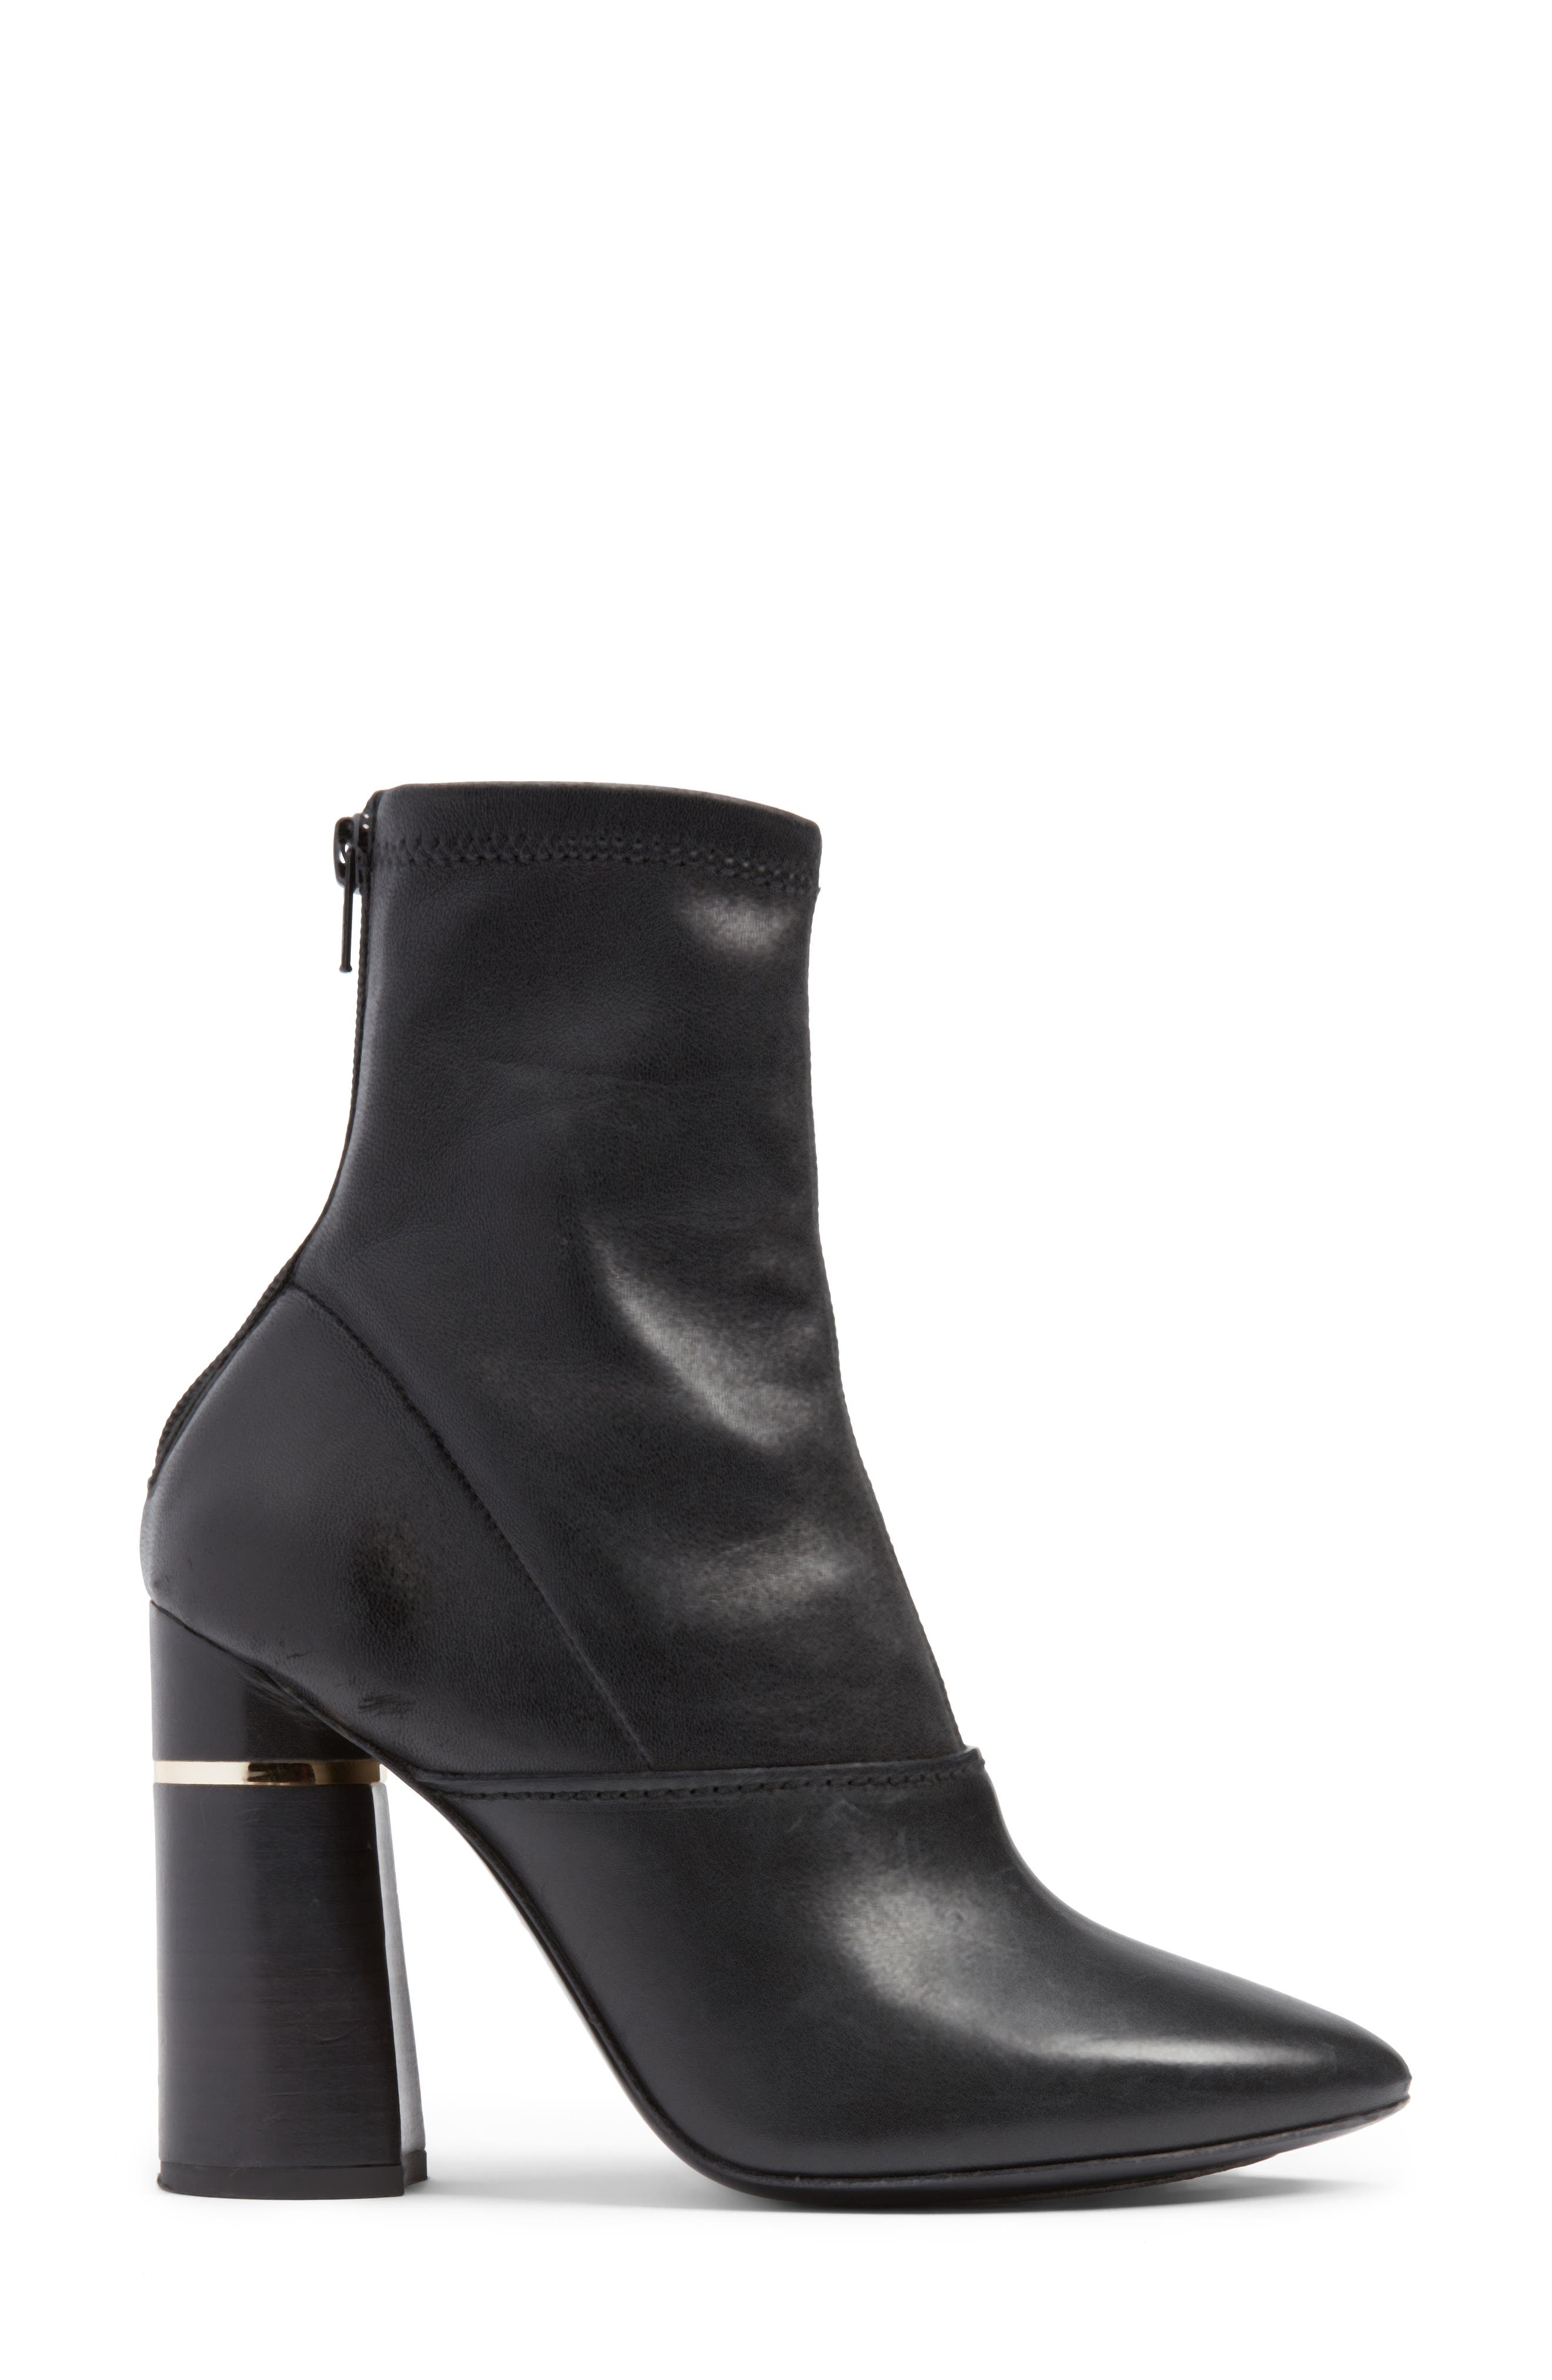 Alternate Image 3  - 3.1 Phillip Lim Kyoto Leather Bootie (Women)